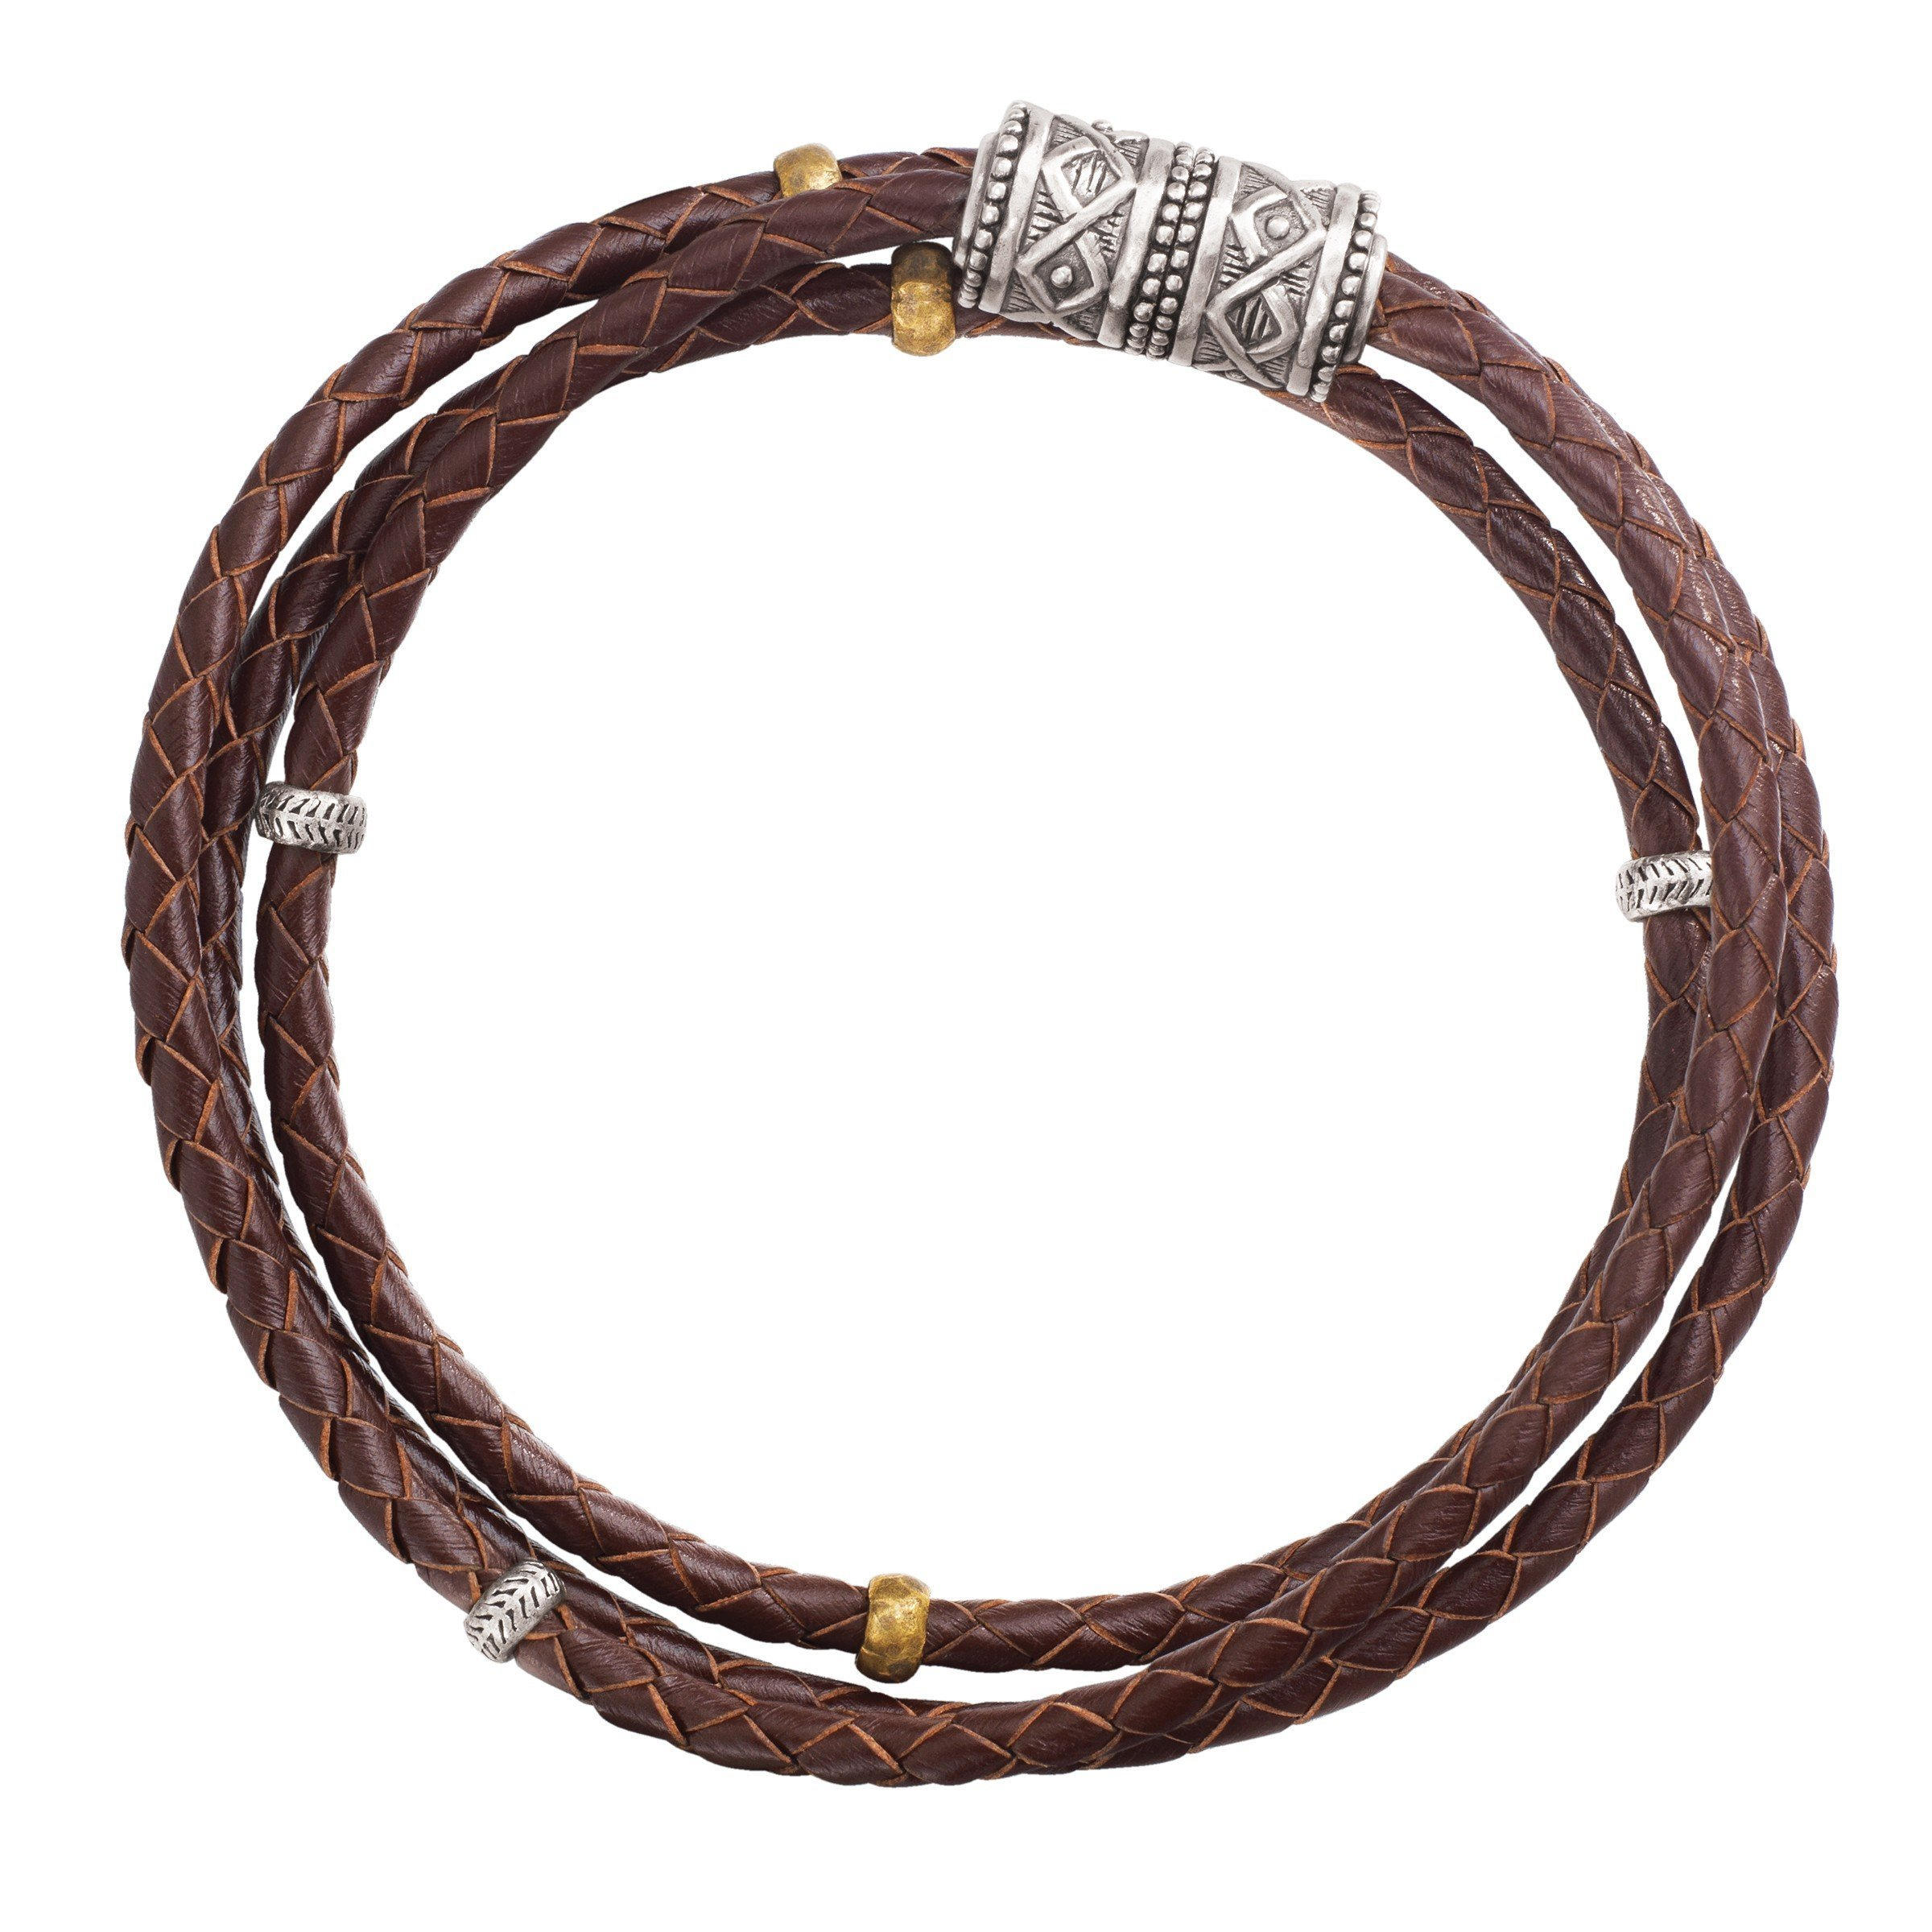 Silpada 'Multi-Purpose' Genuine Leather Wrap Chain Bracelet in Sterling Silver and Brass, 29''